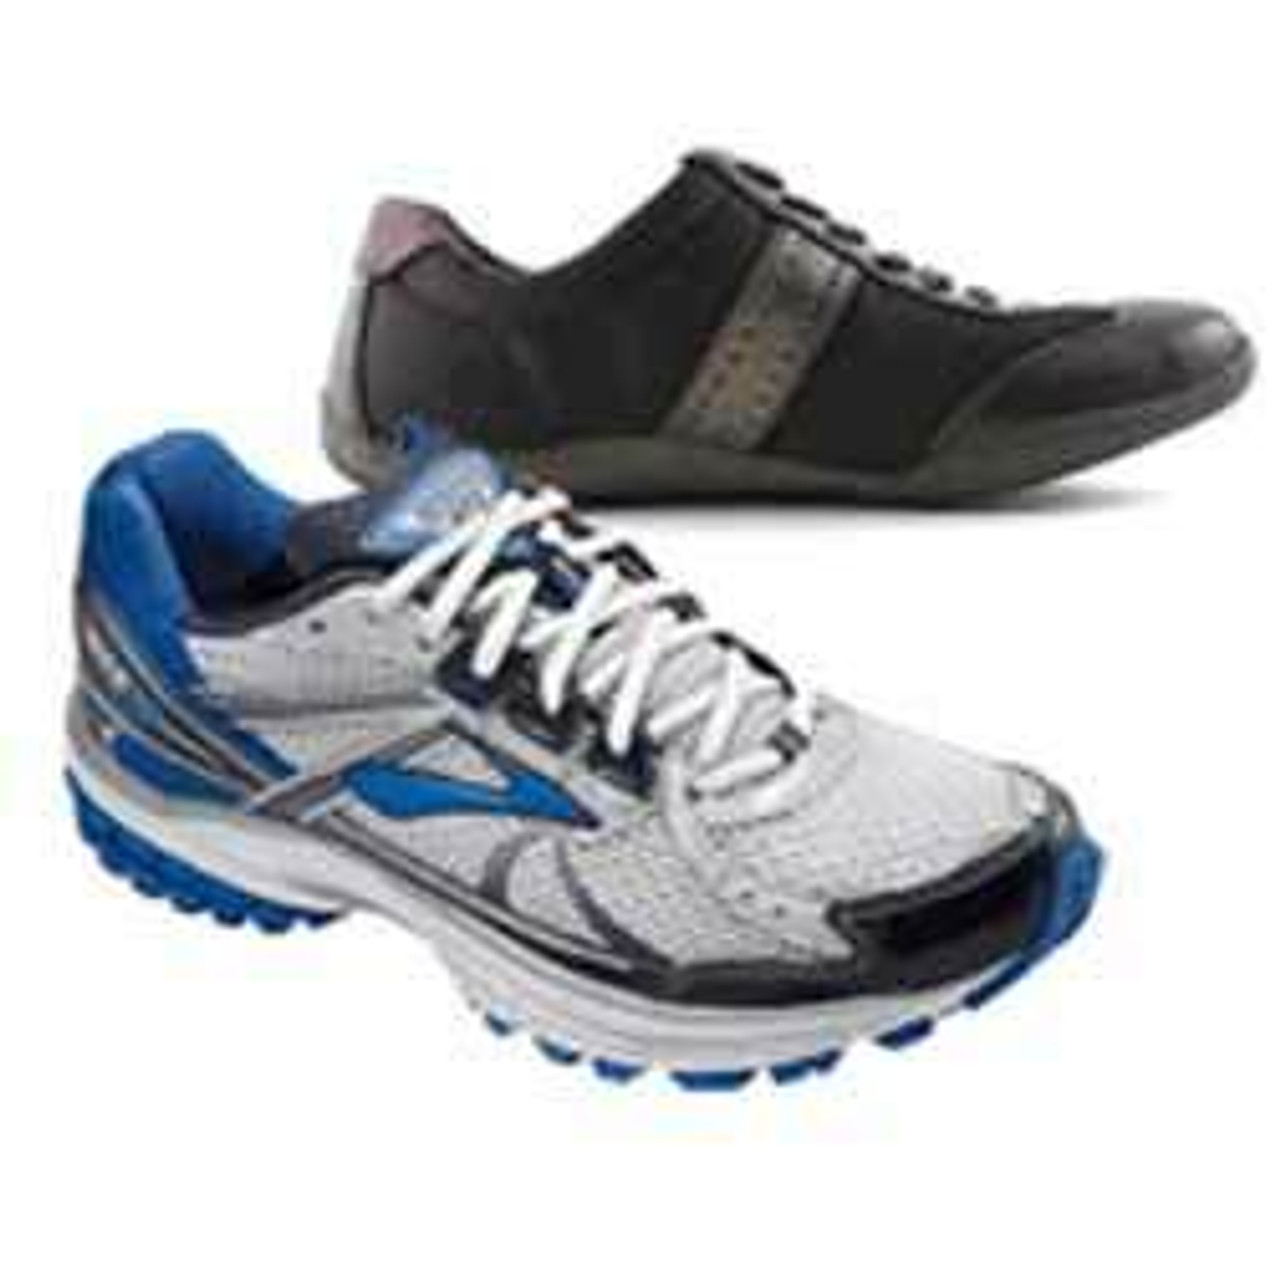 Plantar Fasciitis Specialized Shoes